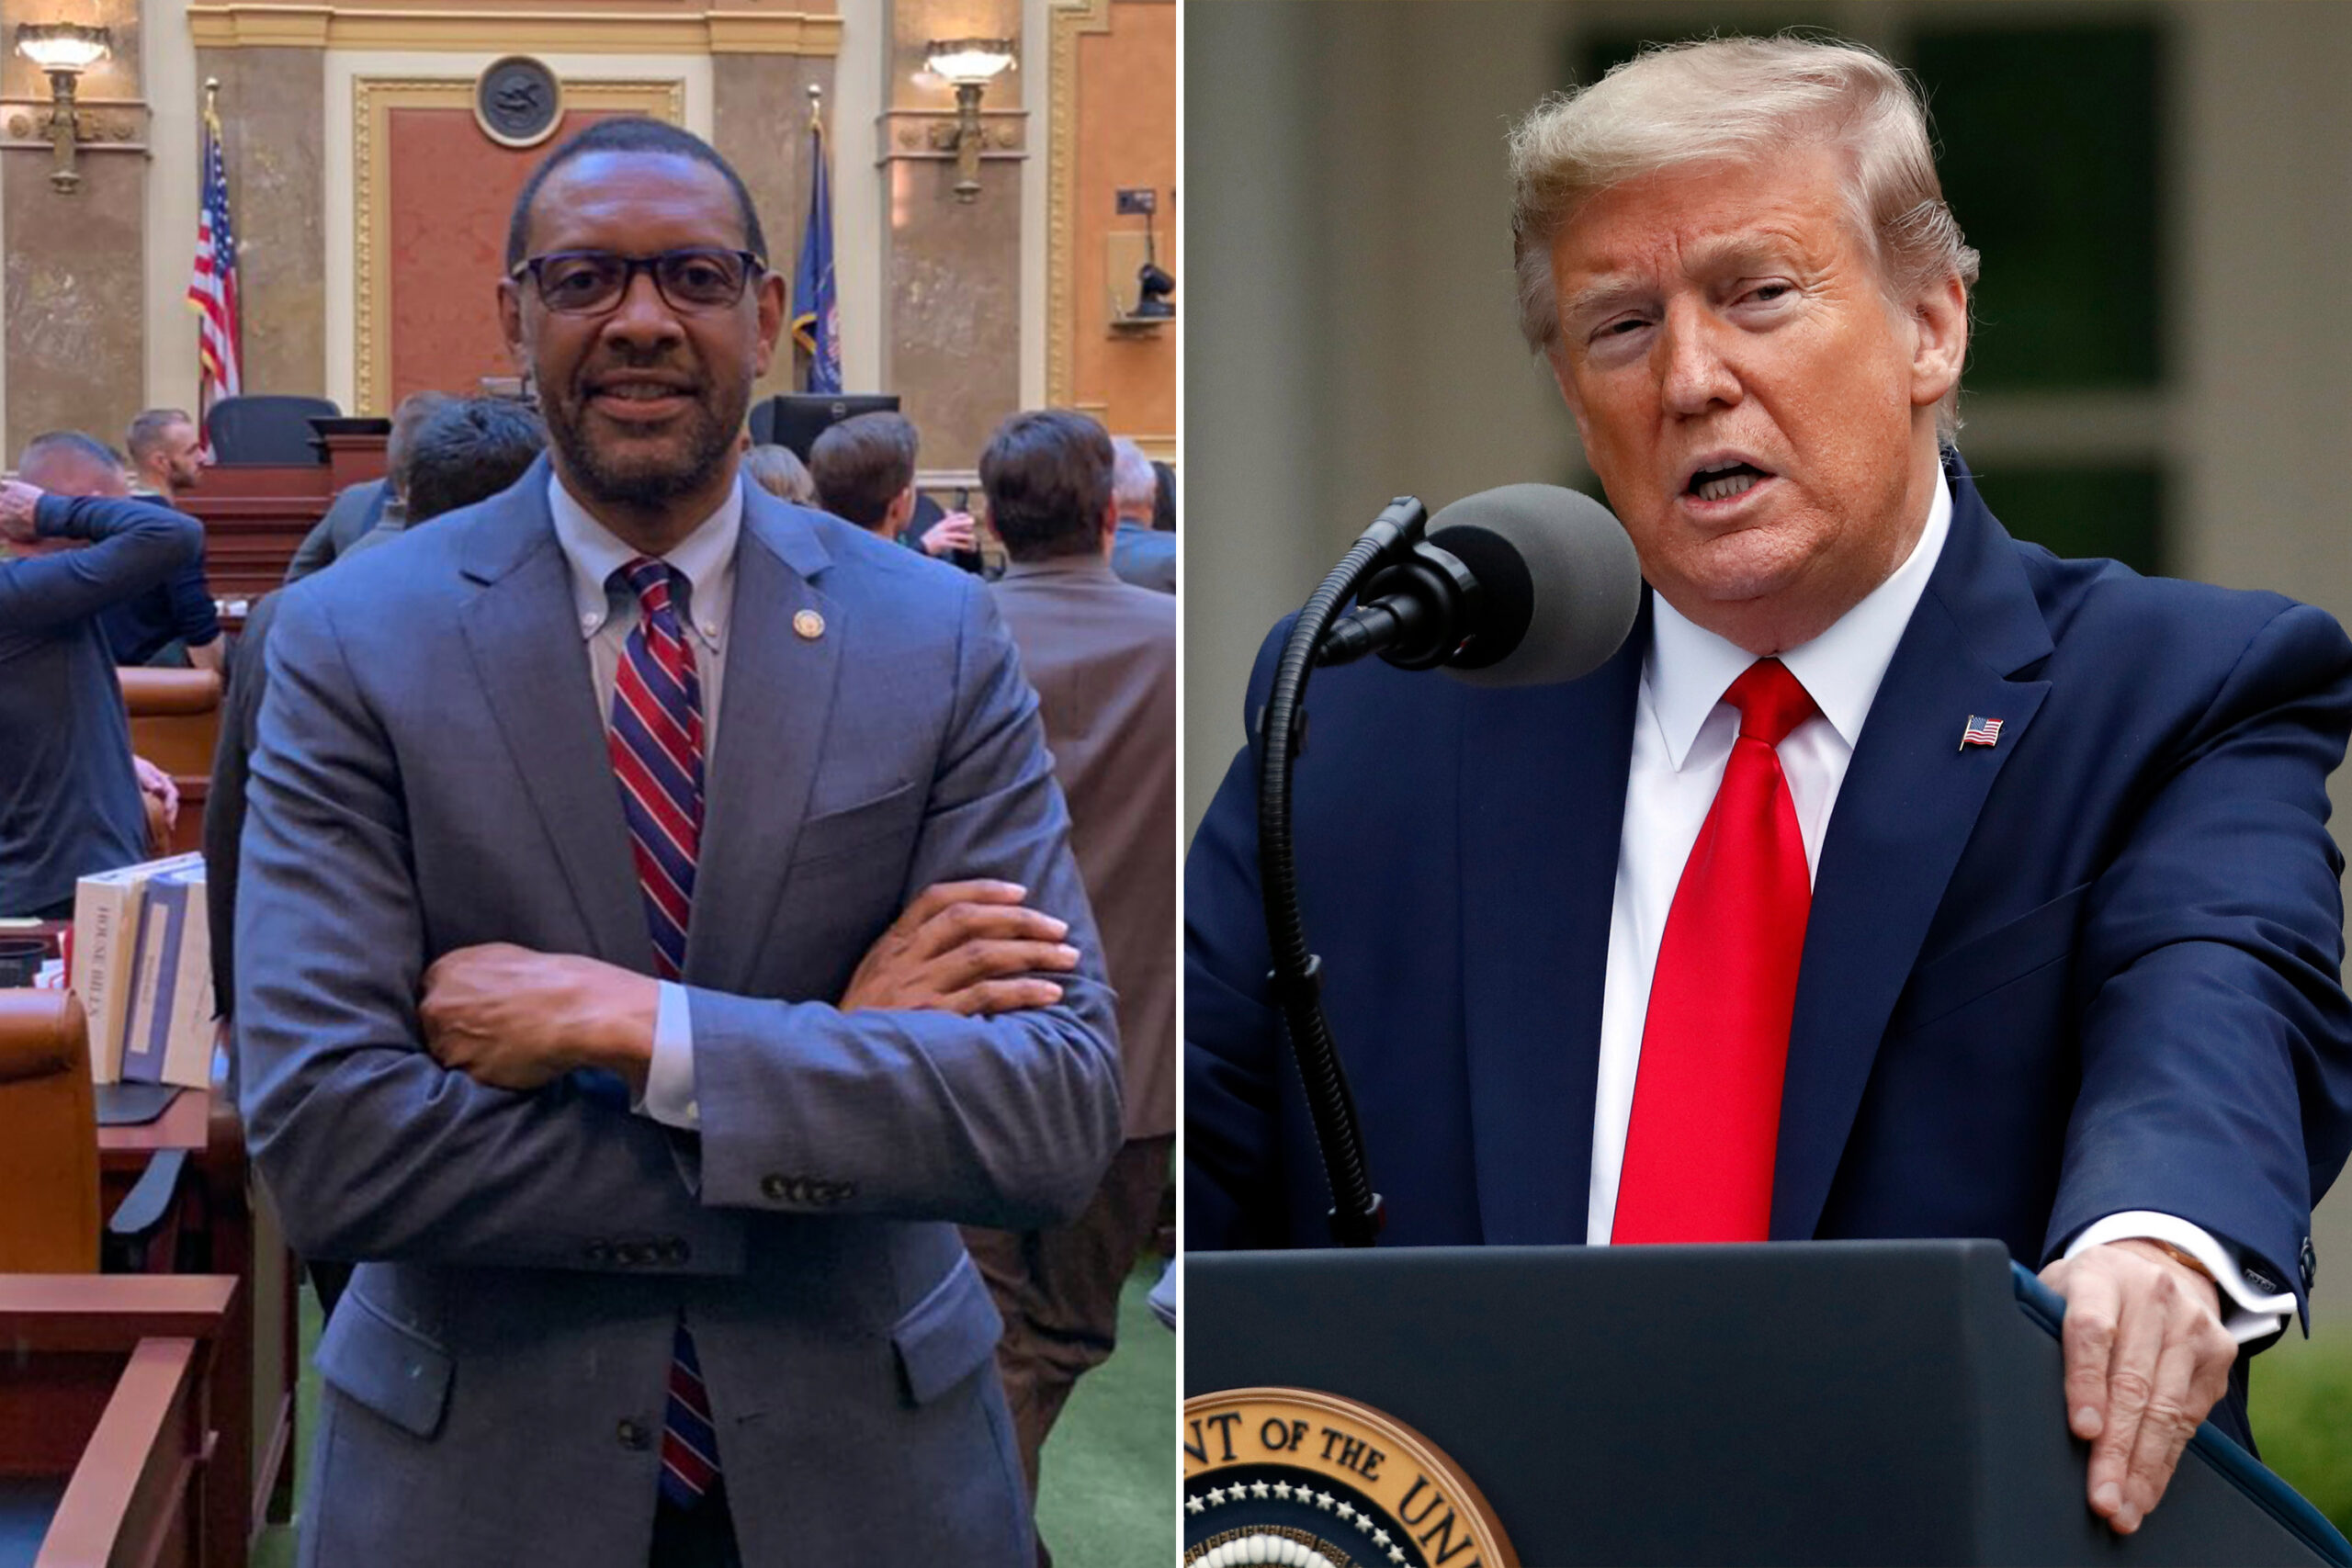 Black Georgia State Rep. Vernon Jones sells his soul with Trump endorsement.